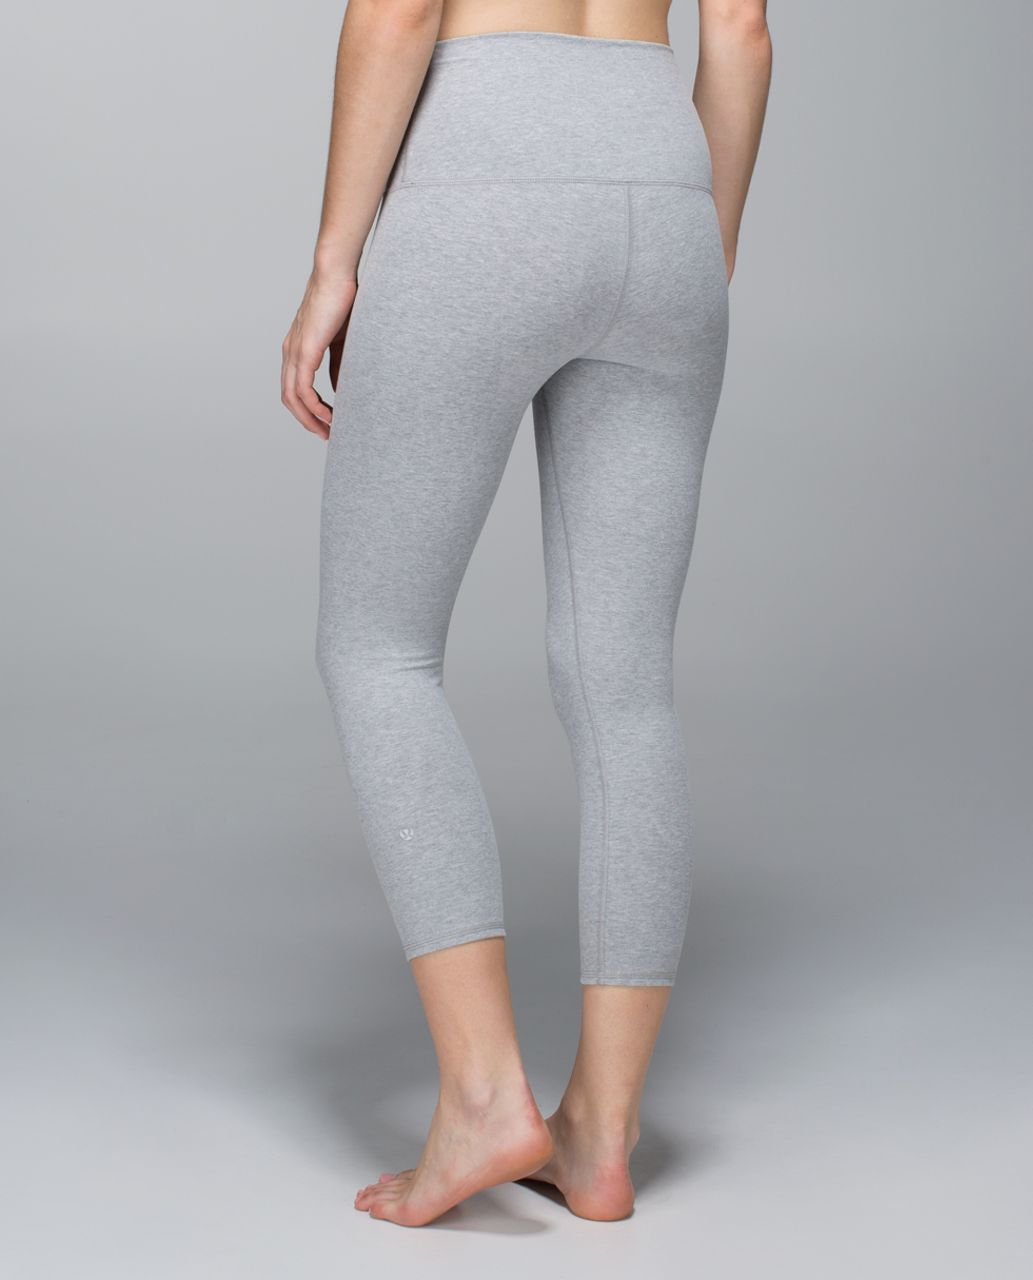 Lululemon Wunder Under Crop *Cotton (Roll Down) - Heathered Medium Grey / Heathered Light Grey